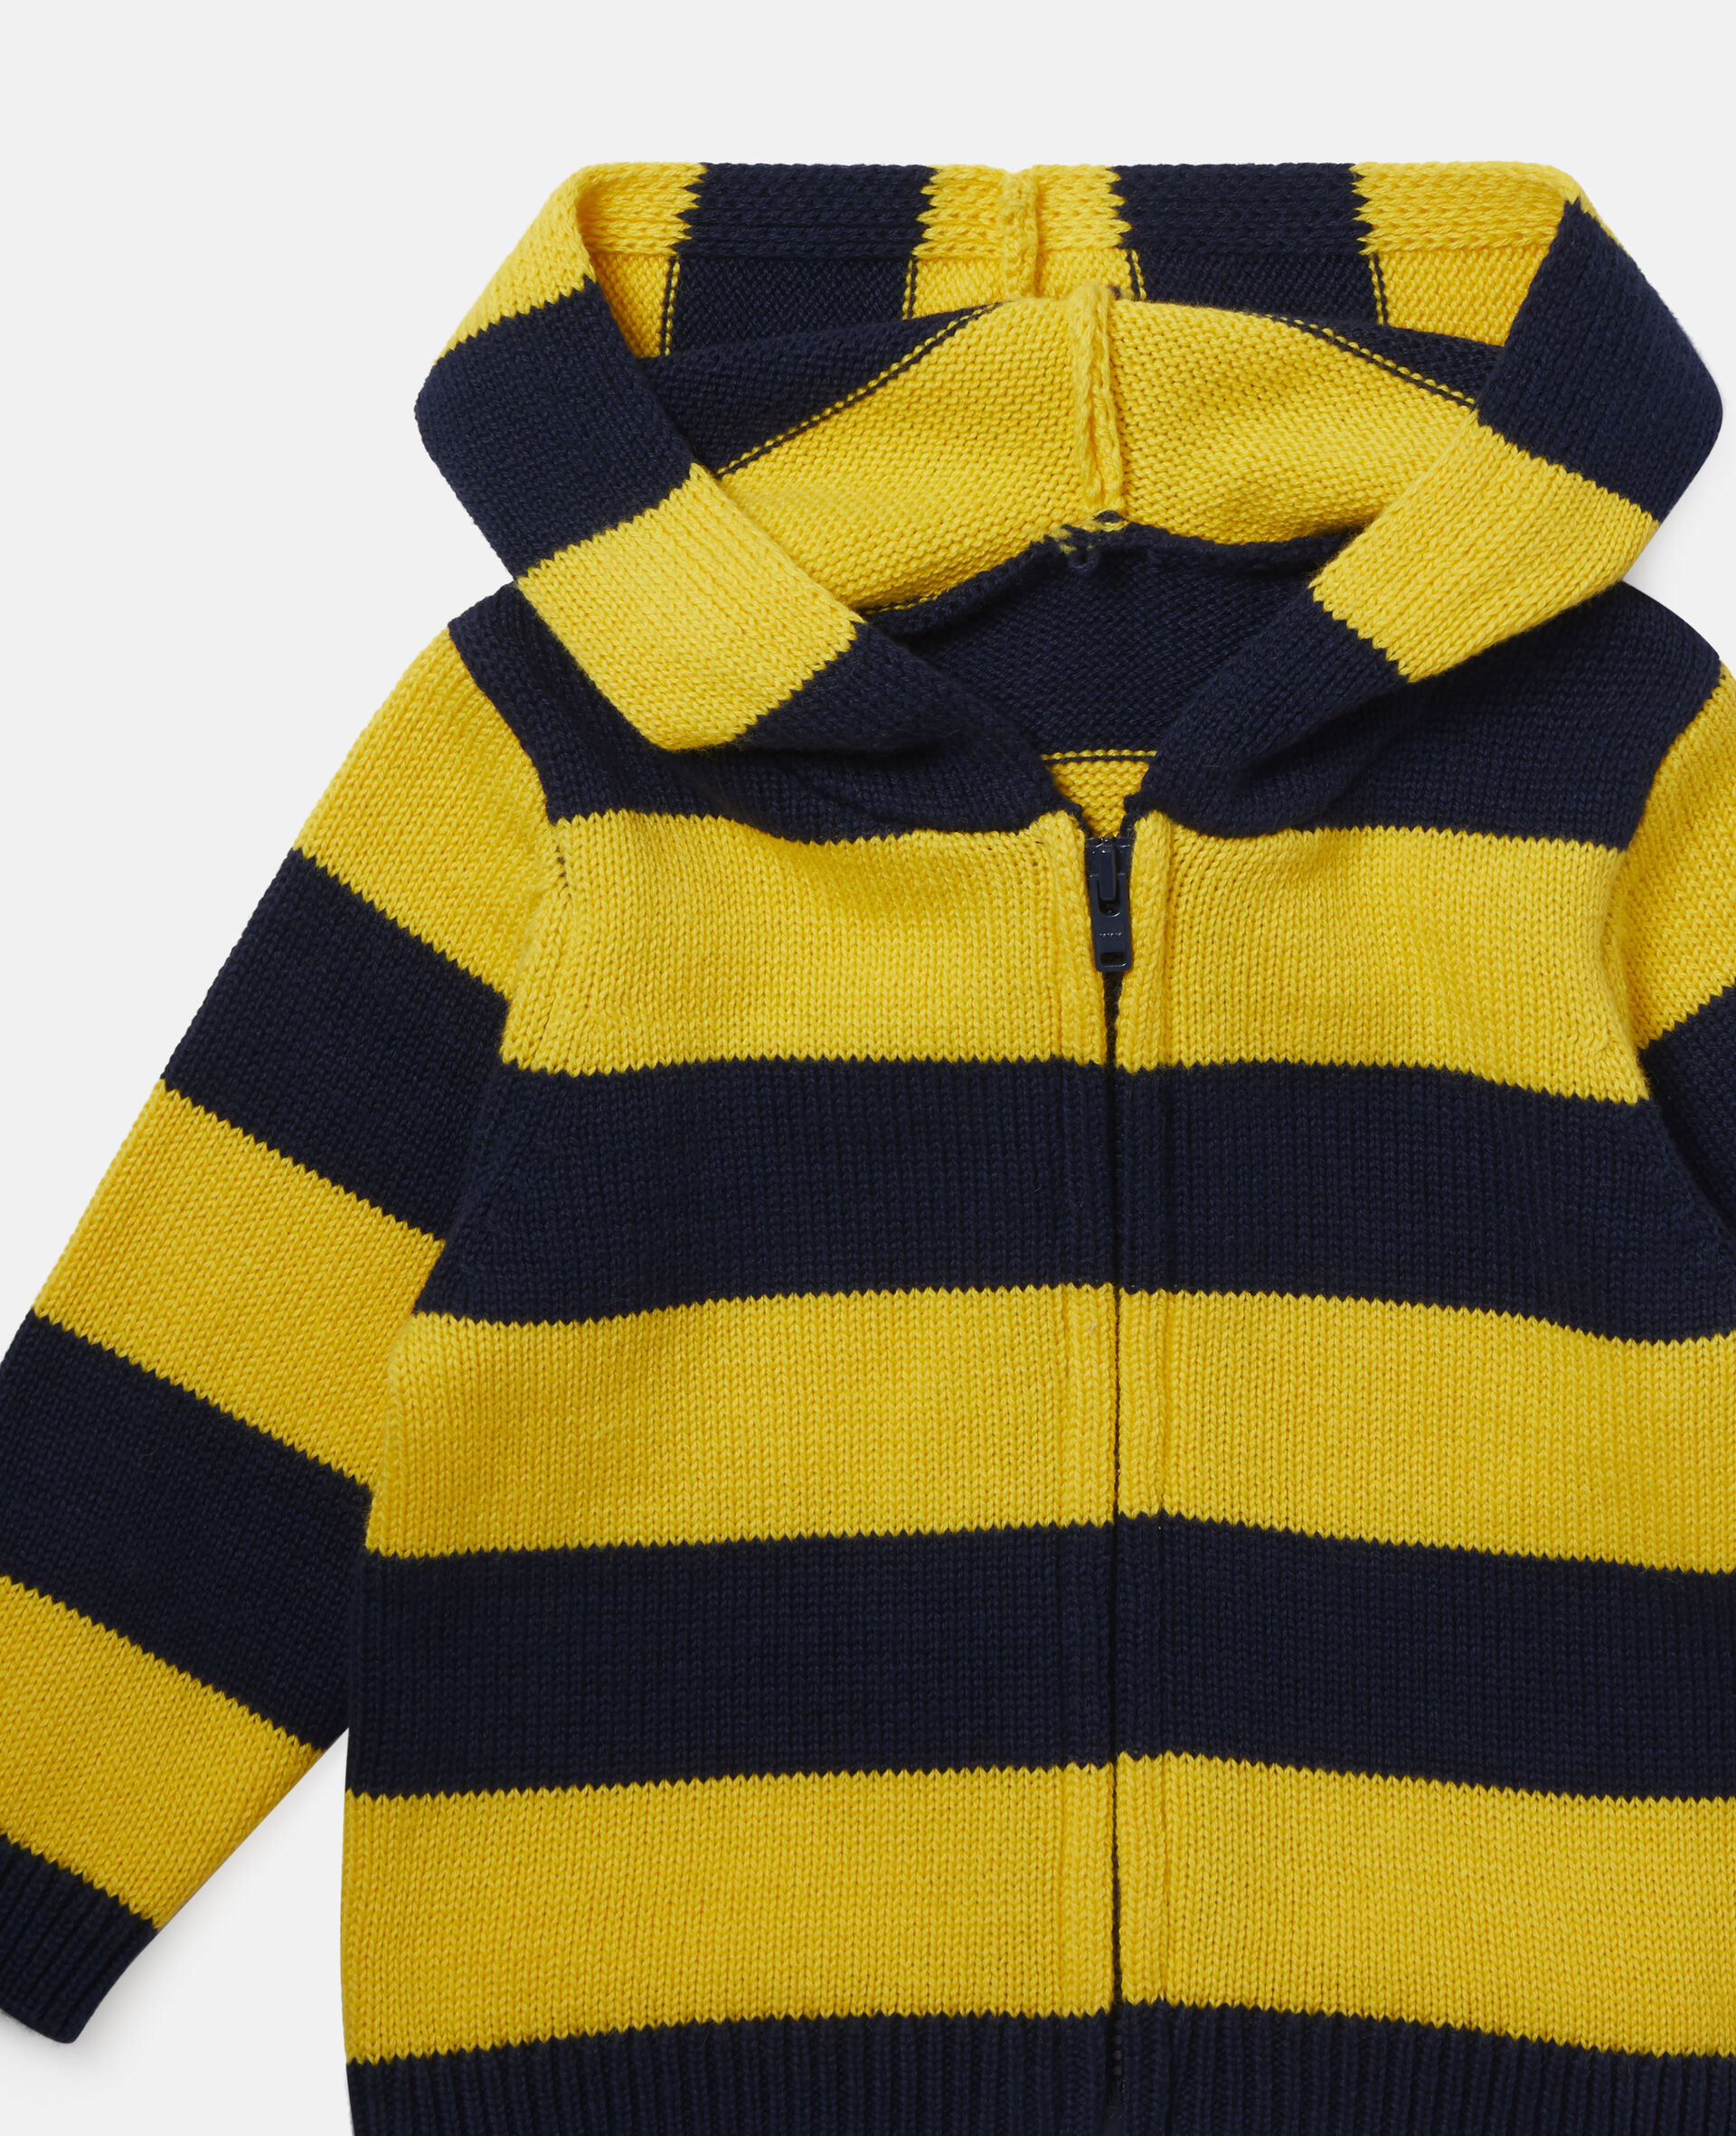 'Eat My Dust' Striped Knit Cardigan-Multicolour-large image number 0